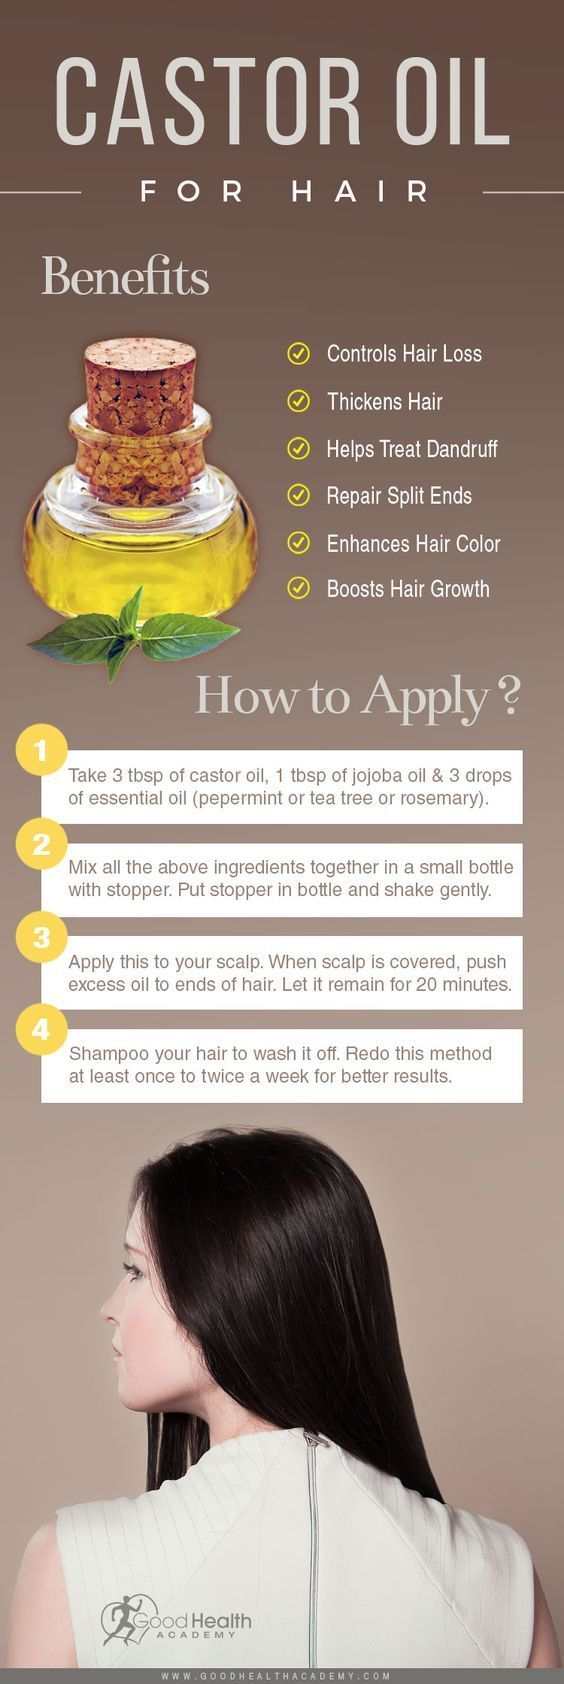 Castor oil contains natural compounds that promote hair growth. It provides nourishment, enabling the hair follicles to restore growth to a normal level.